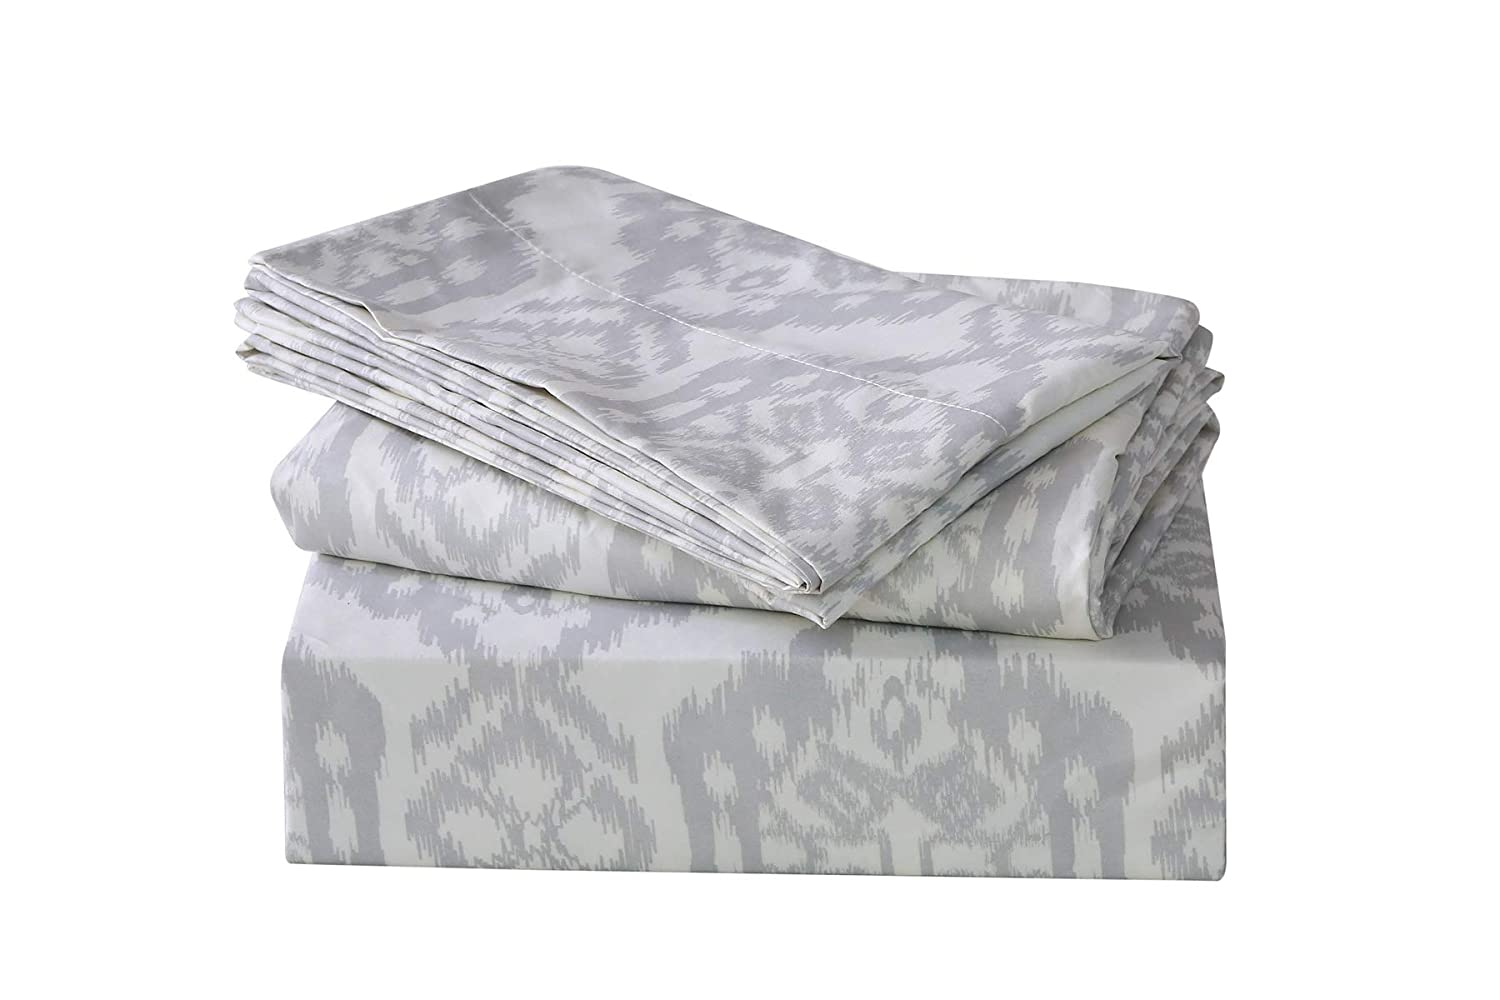 CoutureBridal Black Print Bed Sheet Set Full Black, Bed Sheet Microfiber Printed Pattern, Hotel Quality 4-Pieces Full Sheet Set, 15 inch Elastic Deep Pocket Fitted Sheet and 2 Pillowcases CBCAHBBS009-Full